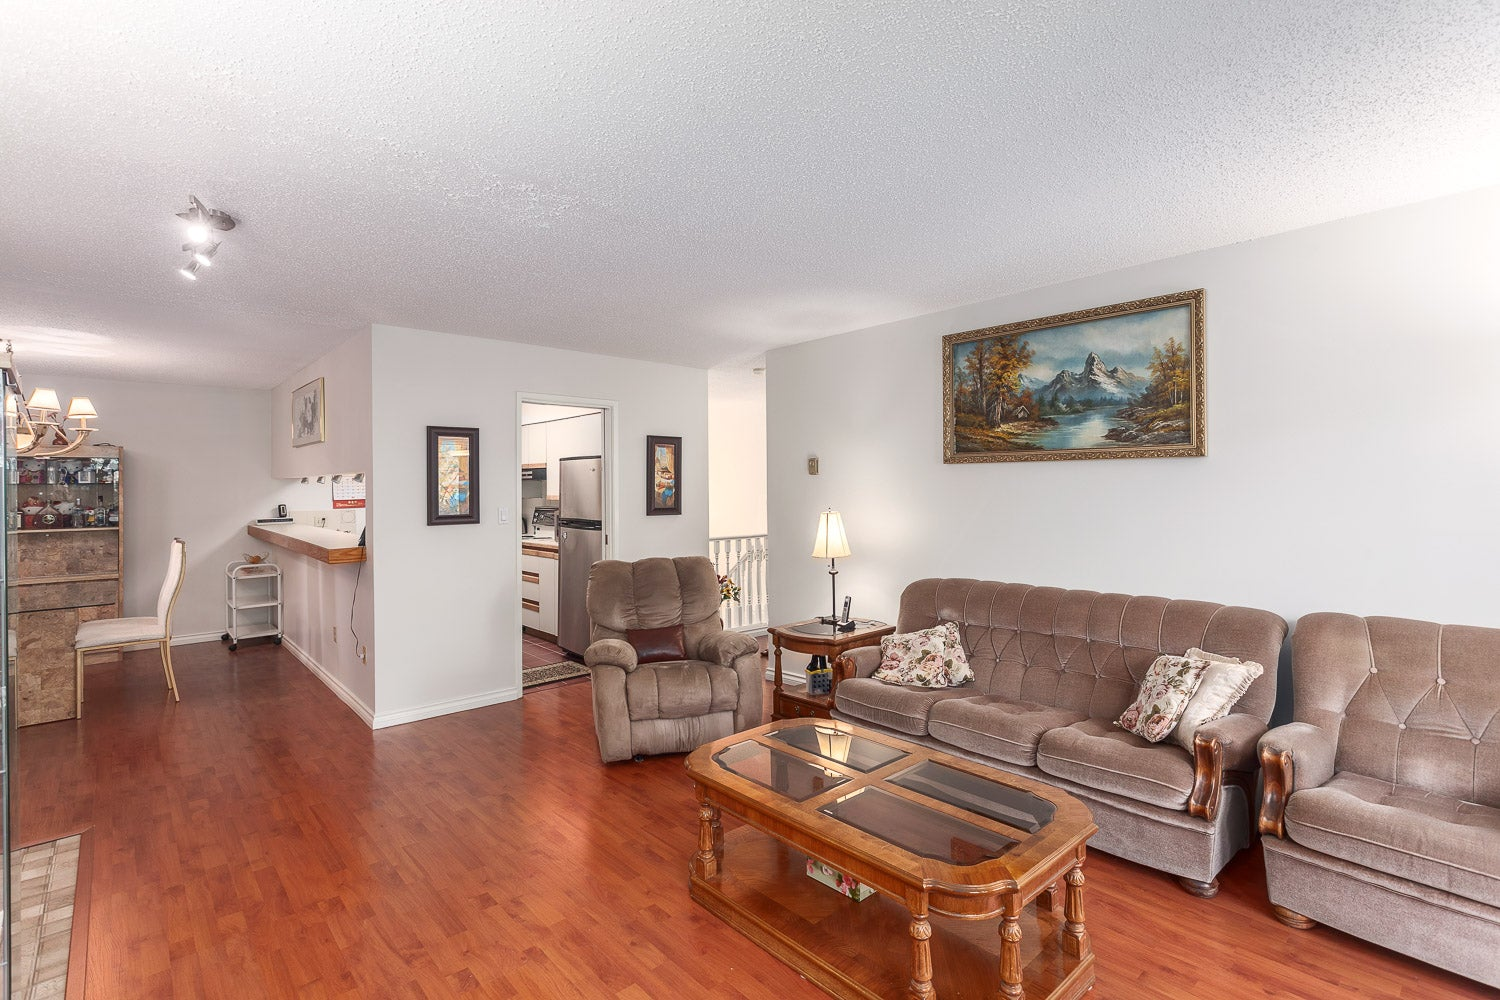 101 4696 W 10TH AVENUE - Point Grey Apartment/Condo for sale, 2 Bedrooms (R2203906) #19